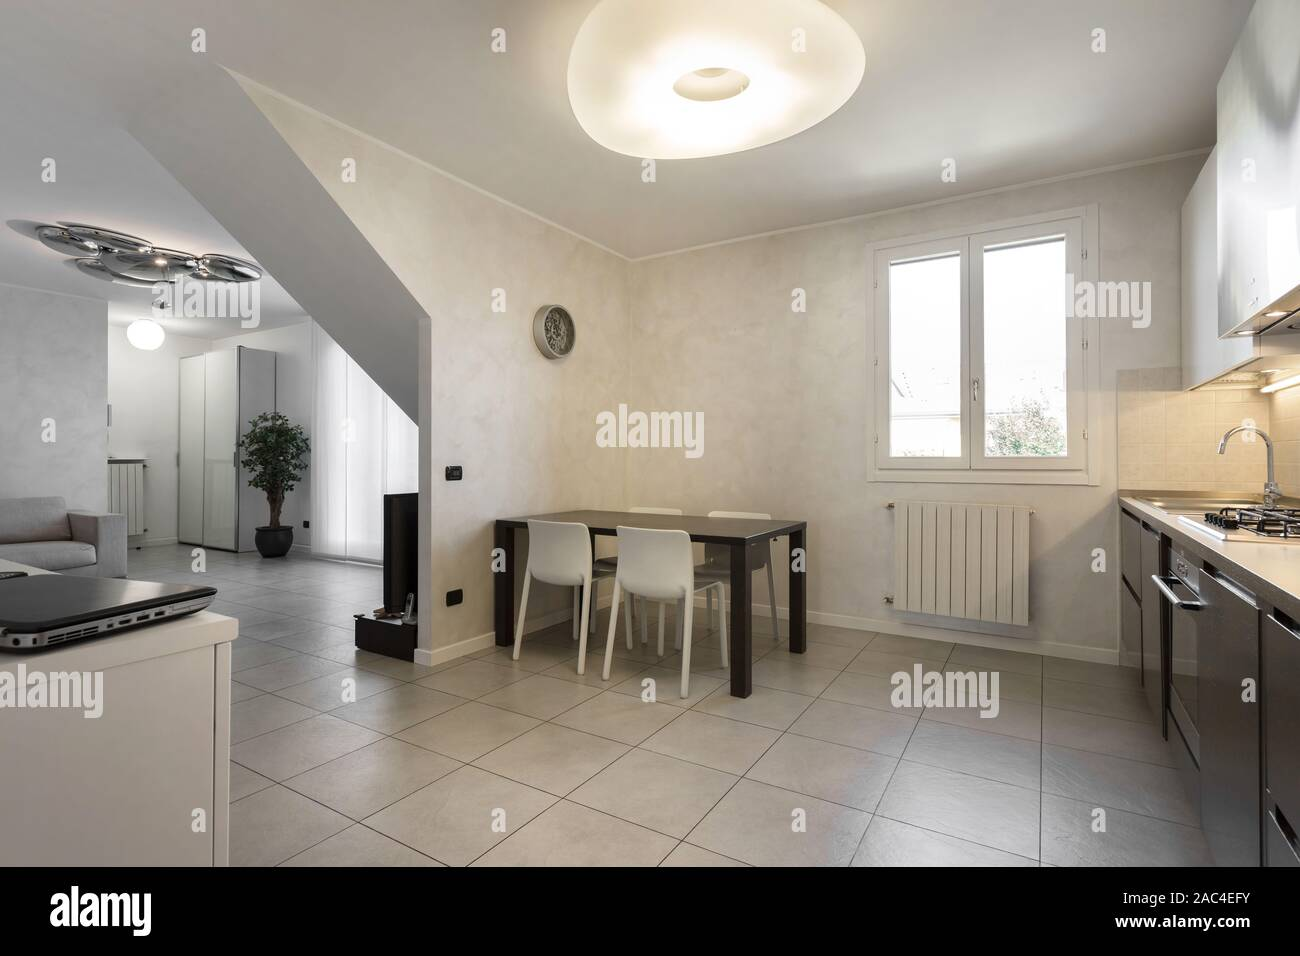 Spacious Apartment Living Room And Kitchen In Modern House Modern Stylish Interior Design Stock Photo Alamy